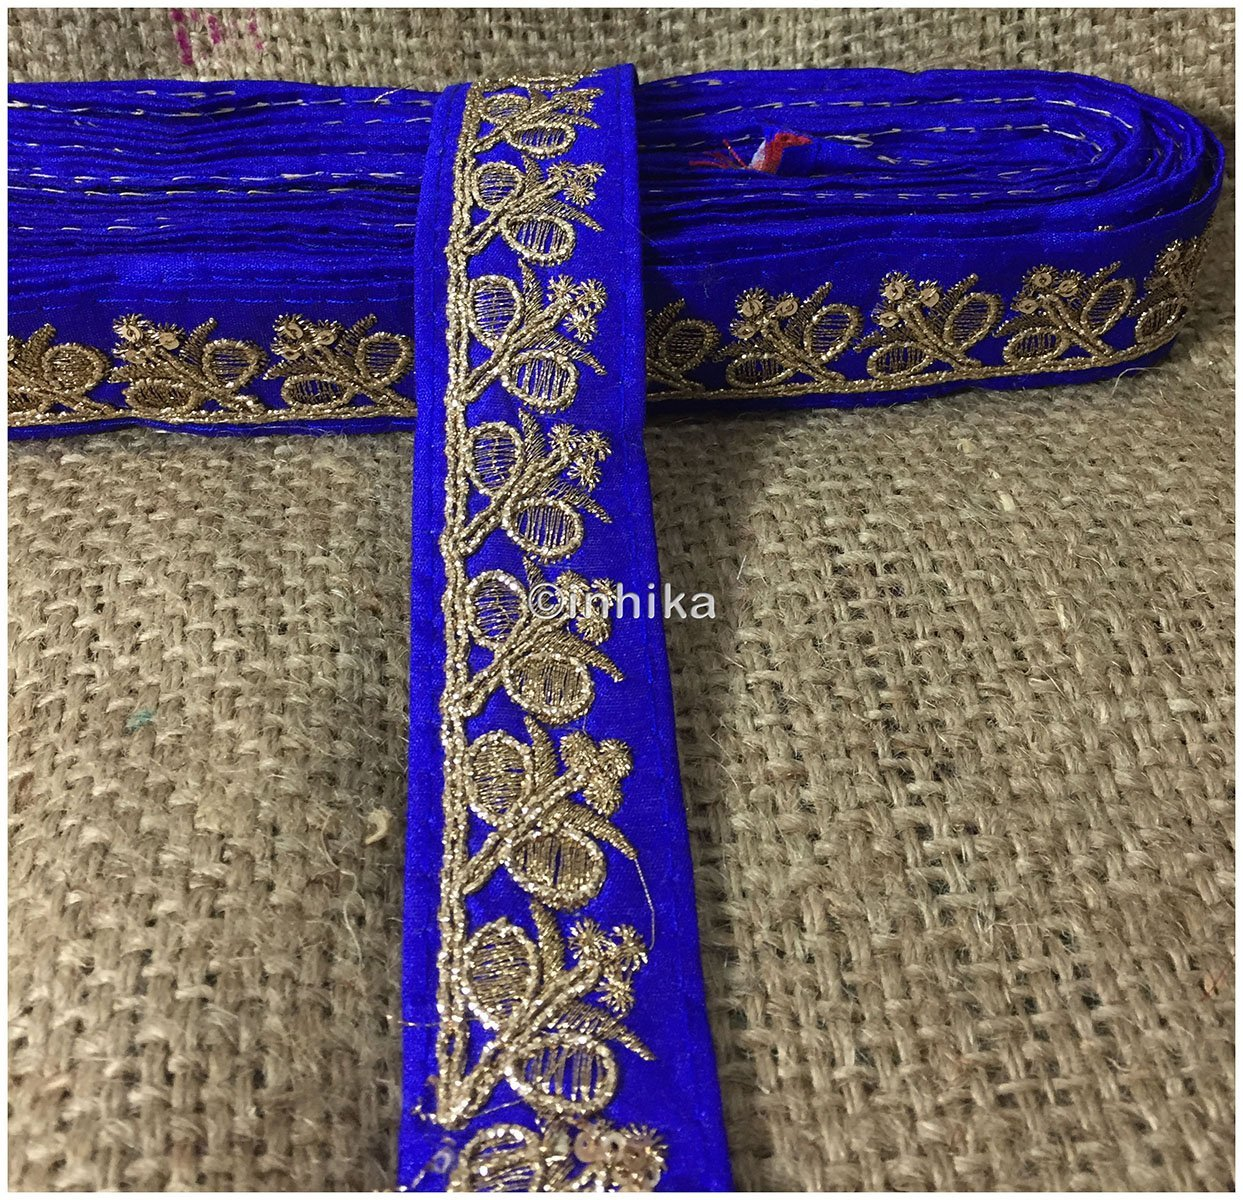 lace trim fabric garment accessories suppliers in mumbai Royal-Blue-Embroidery-Sequins-2-Inch-Wide-3280